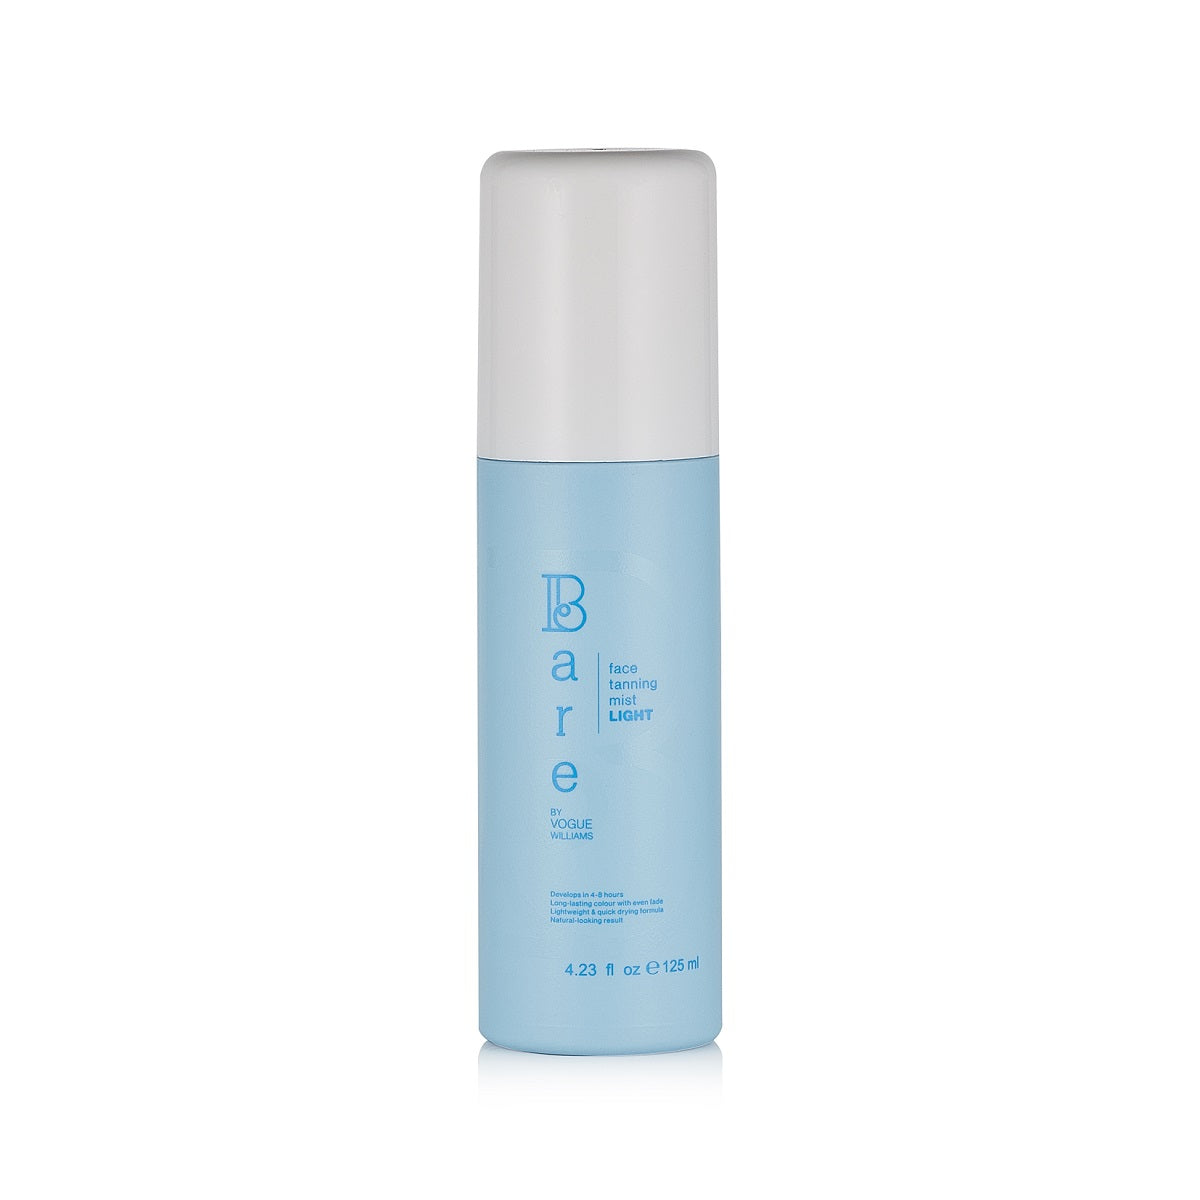 Bare By Vogue Face Tanning Mist Light with FREE Tanning Mitt